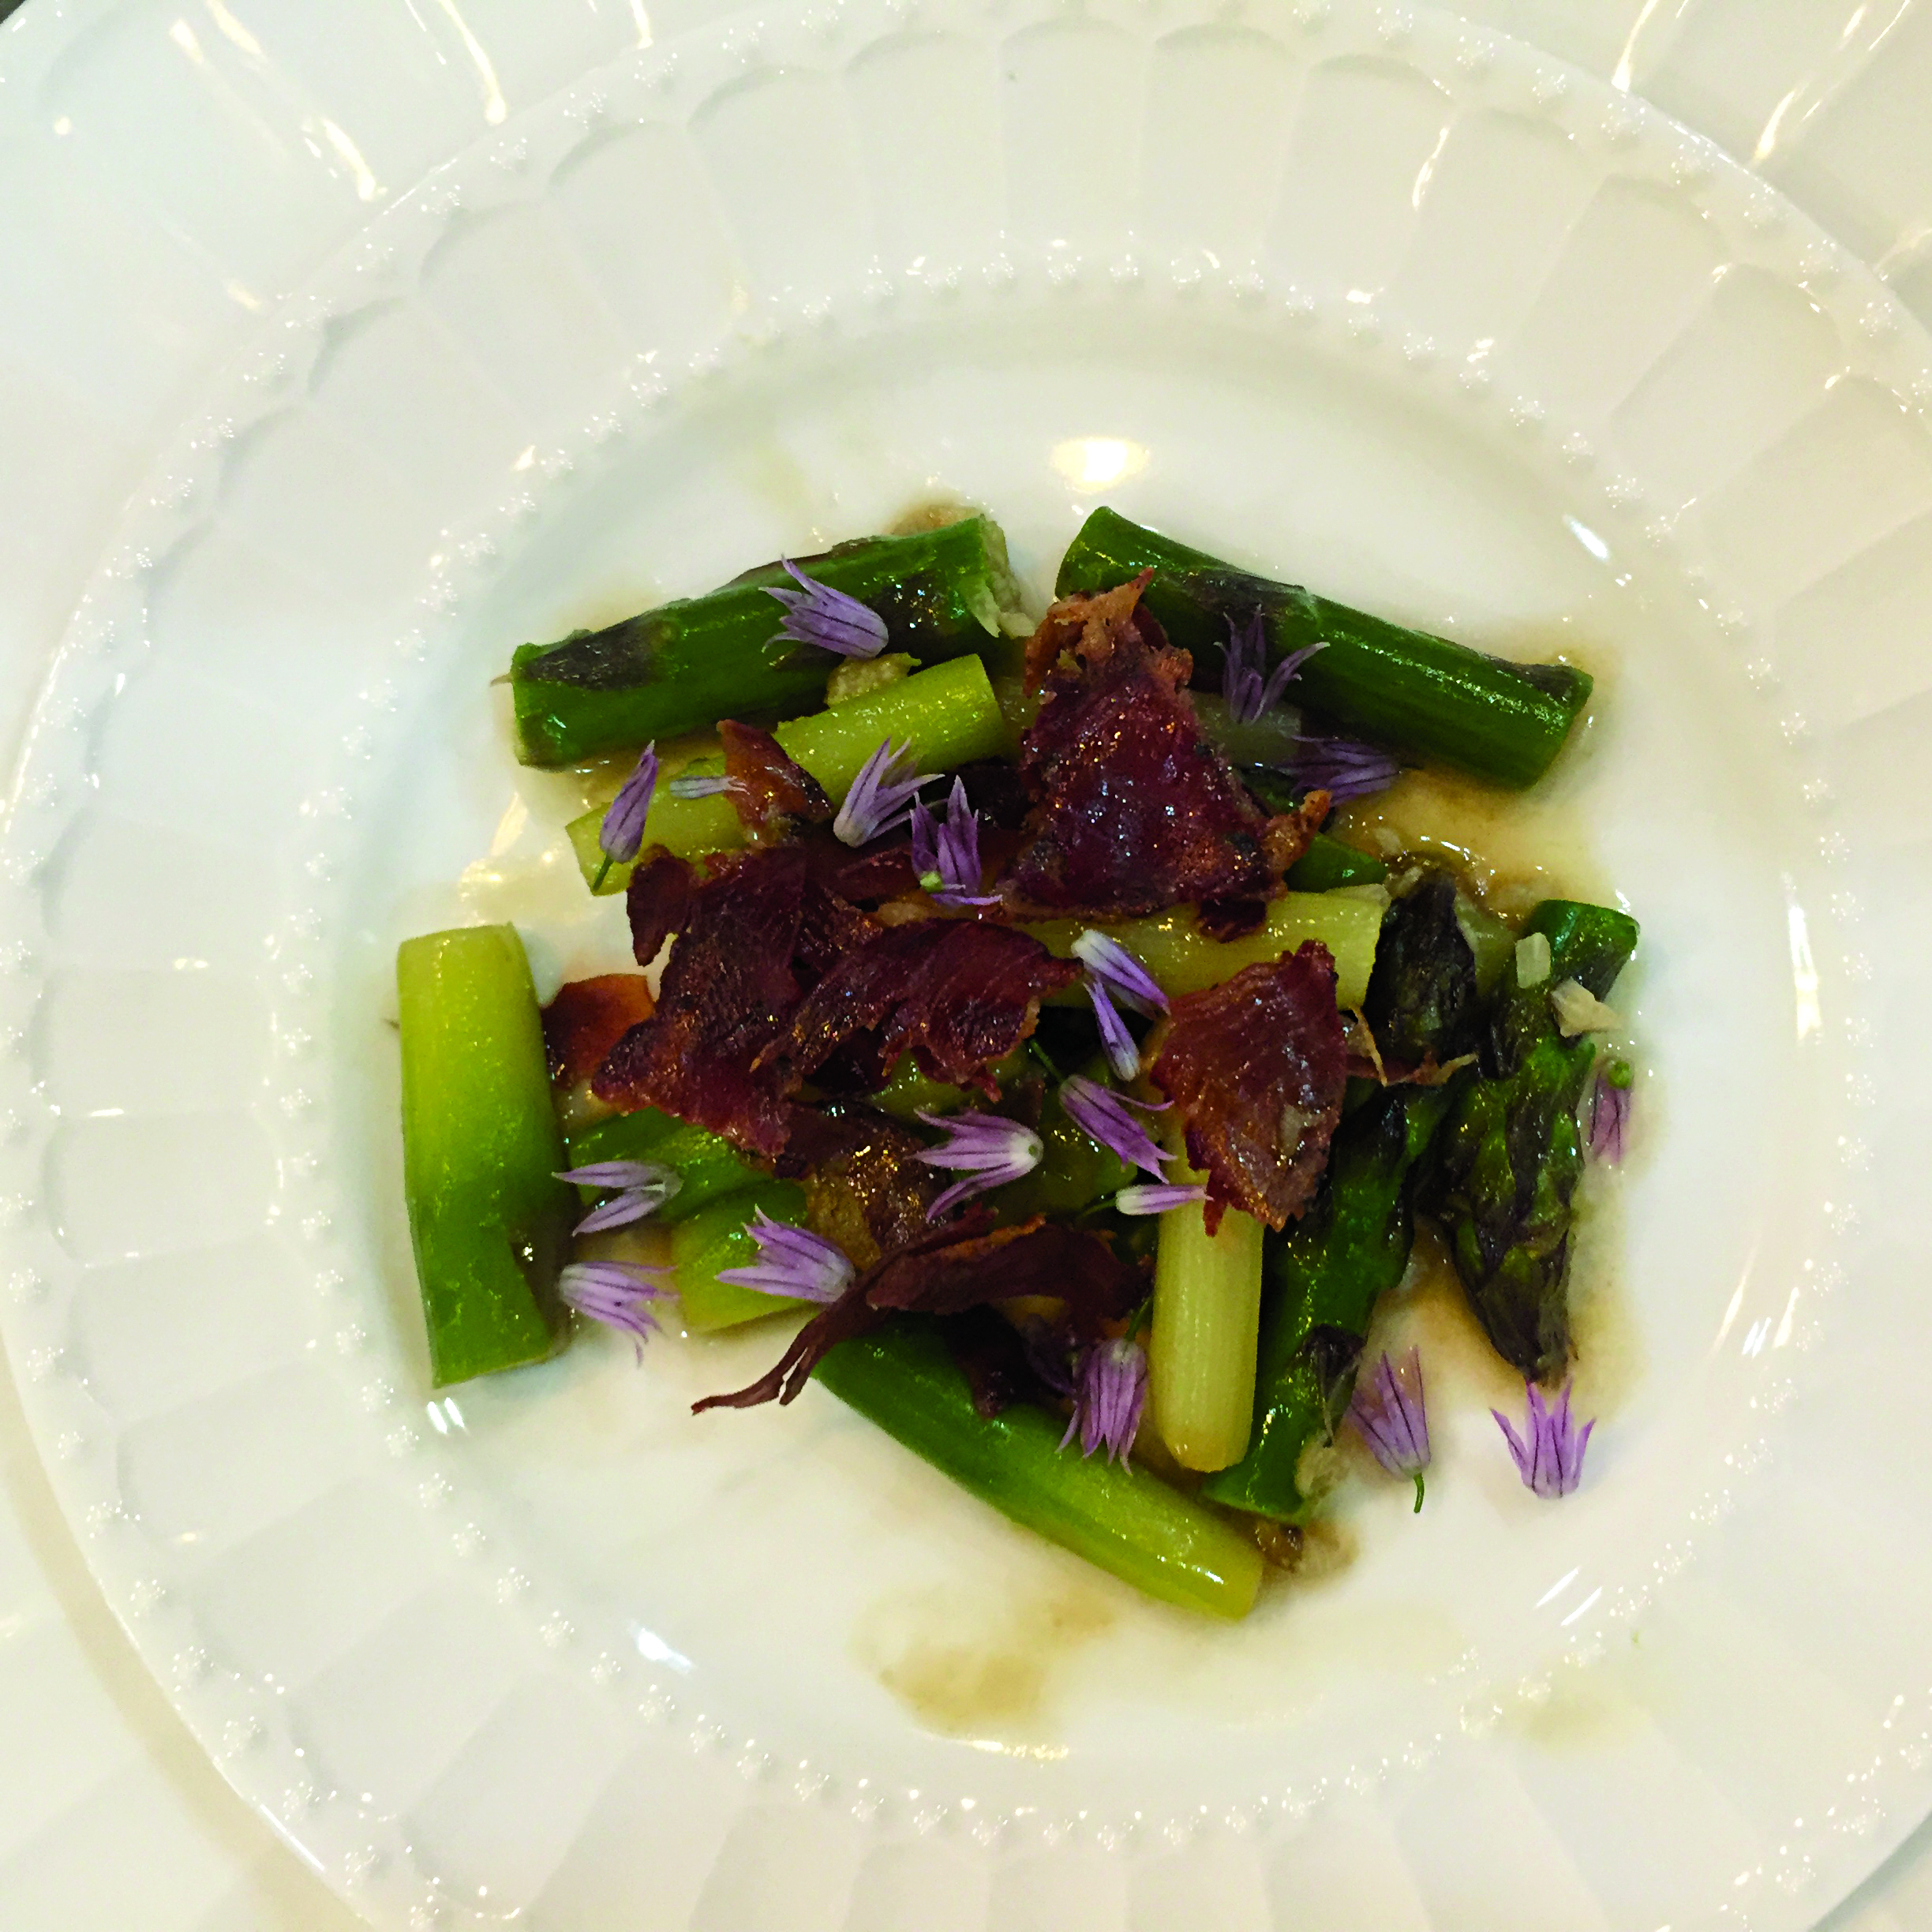 Skillet Braised Asparagus with Crispy Coppa & Chive Flowers